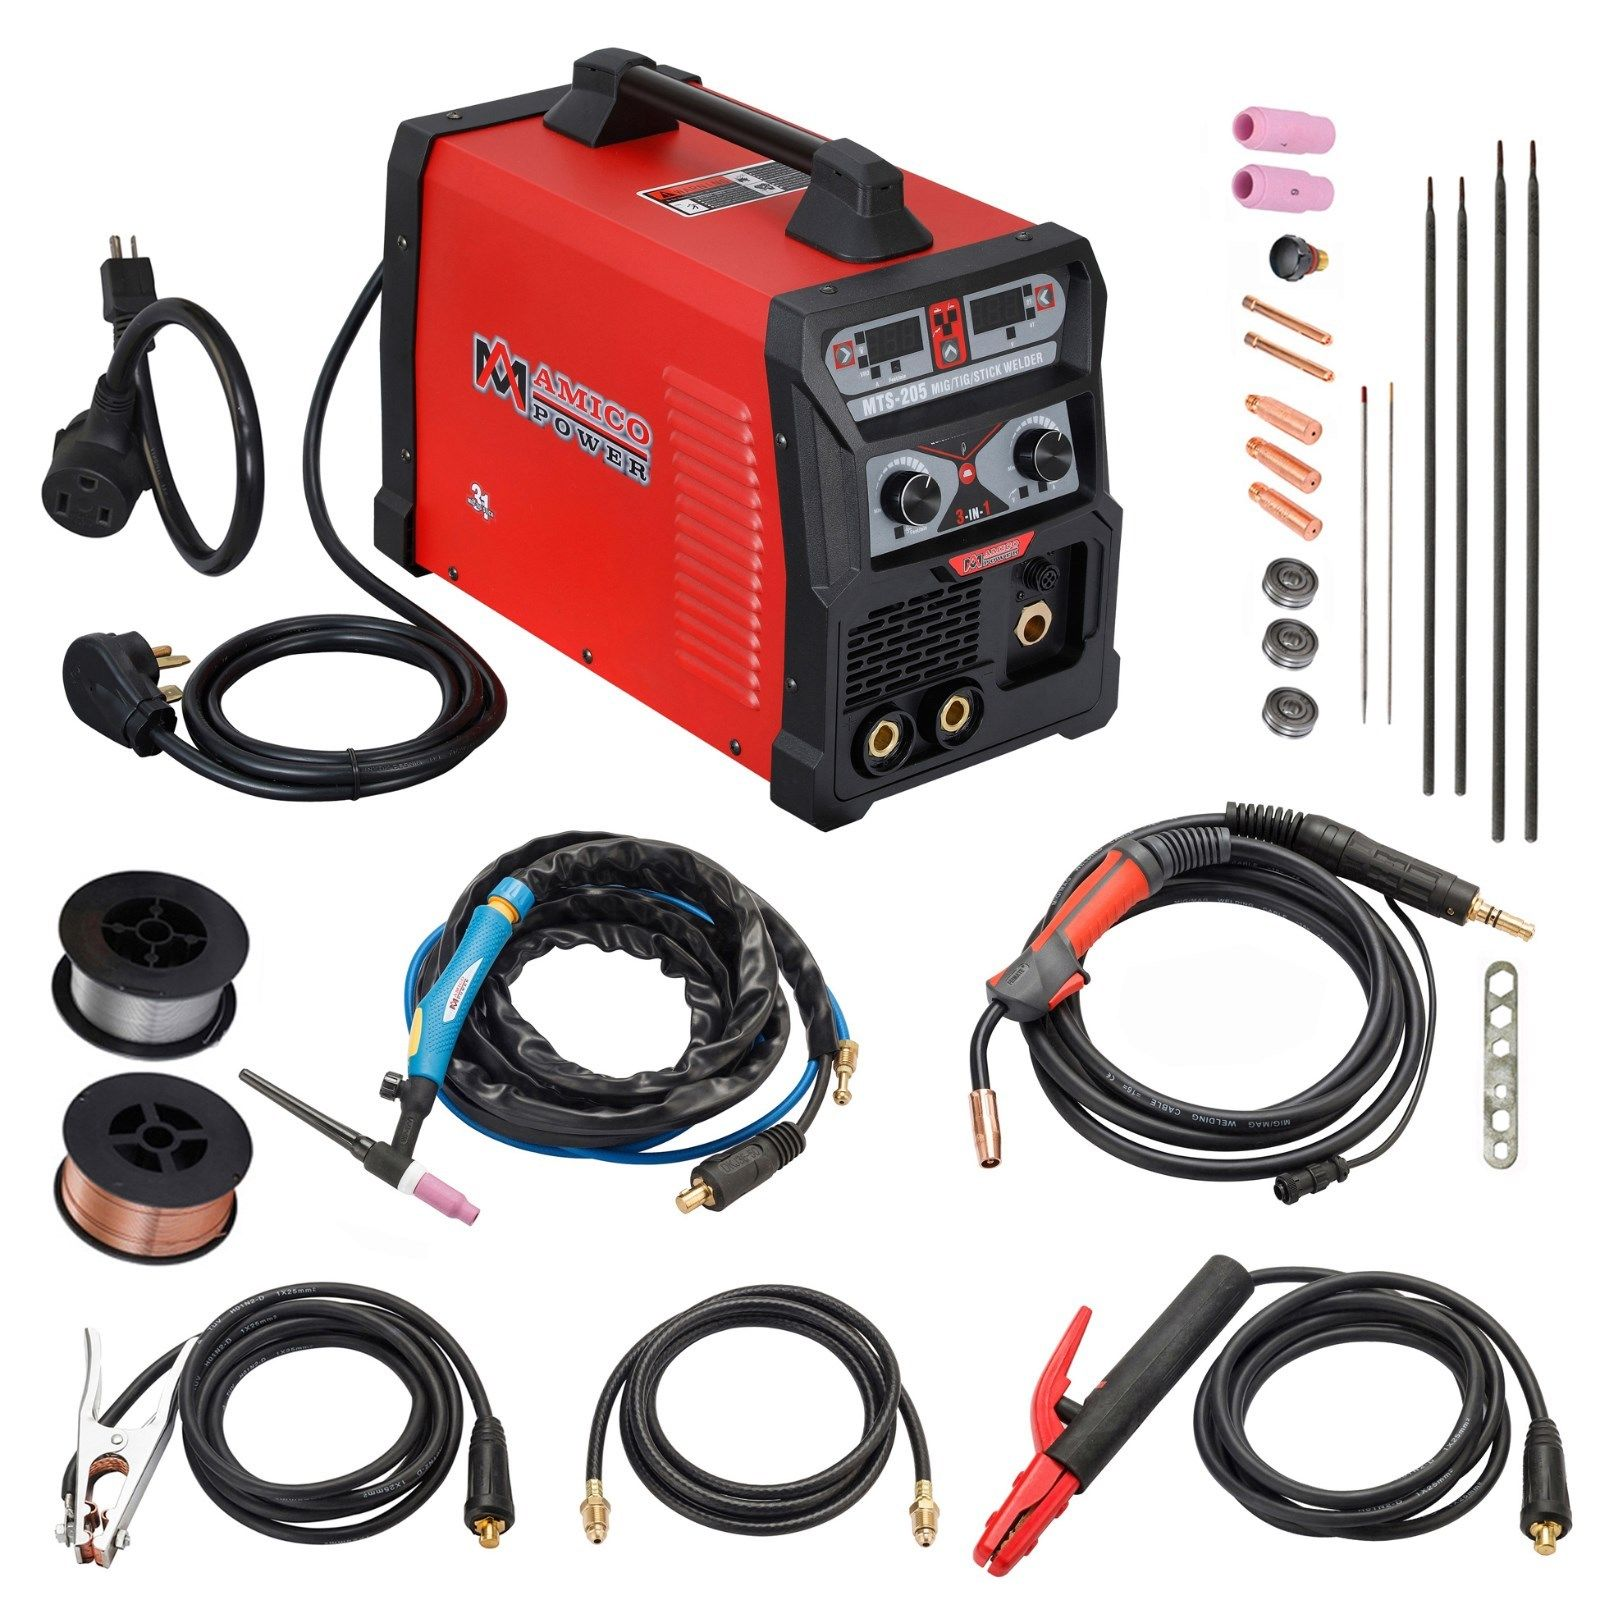 MTS-205A MIG Flux Cored Wire, TIG Torch, Stick Arc Welder 3-IN-1 Combo Welding by Amico Power